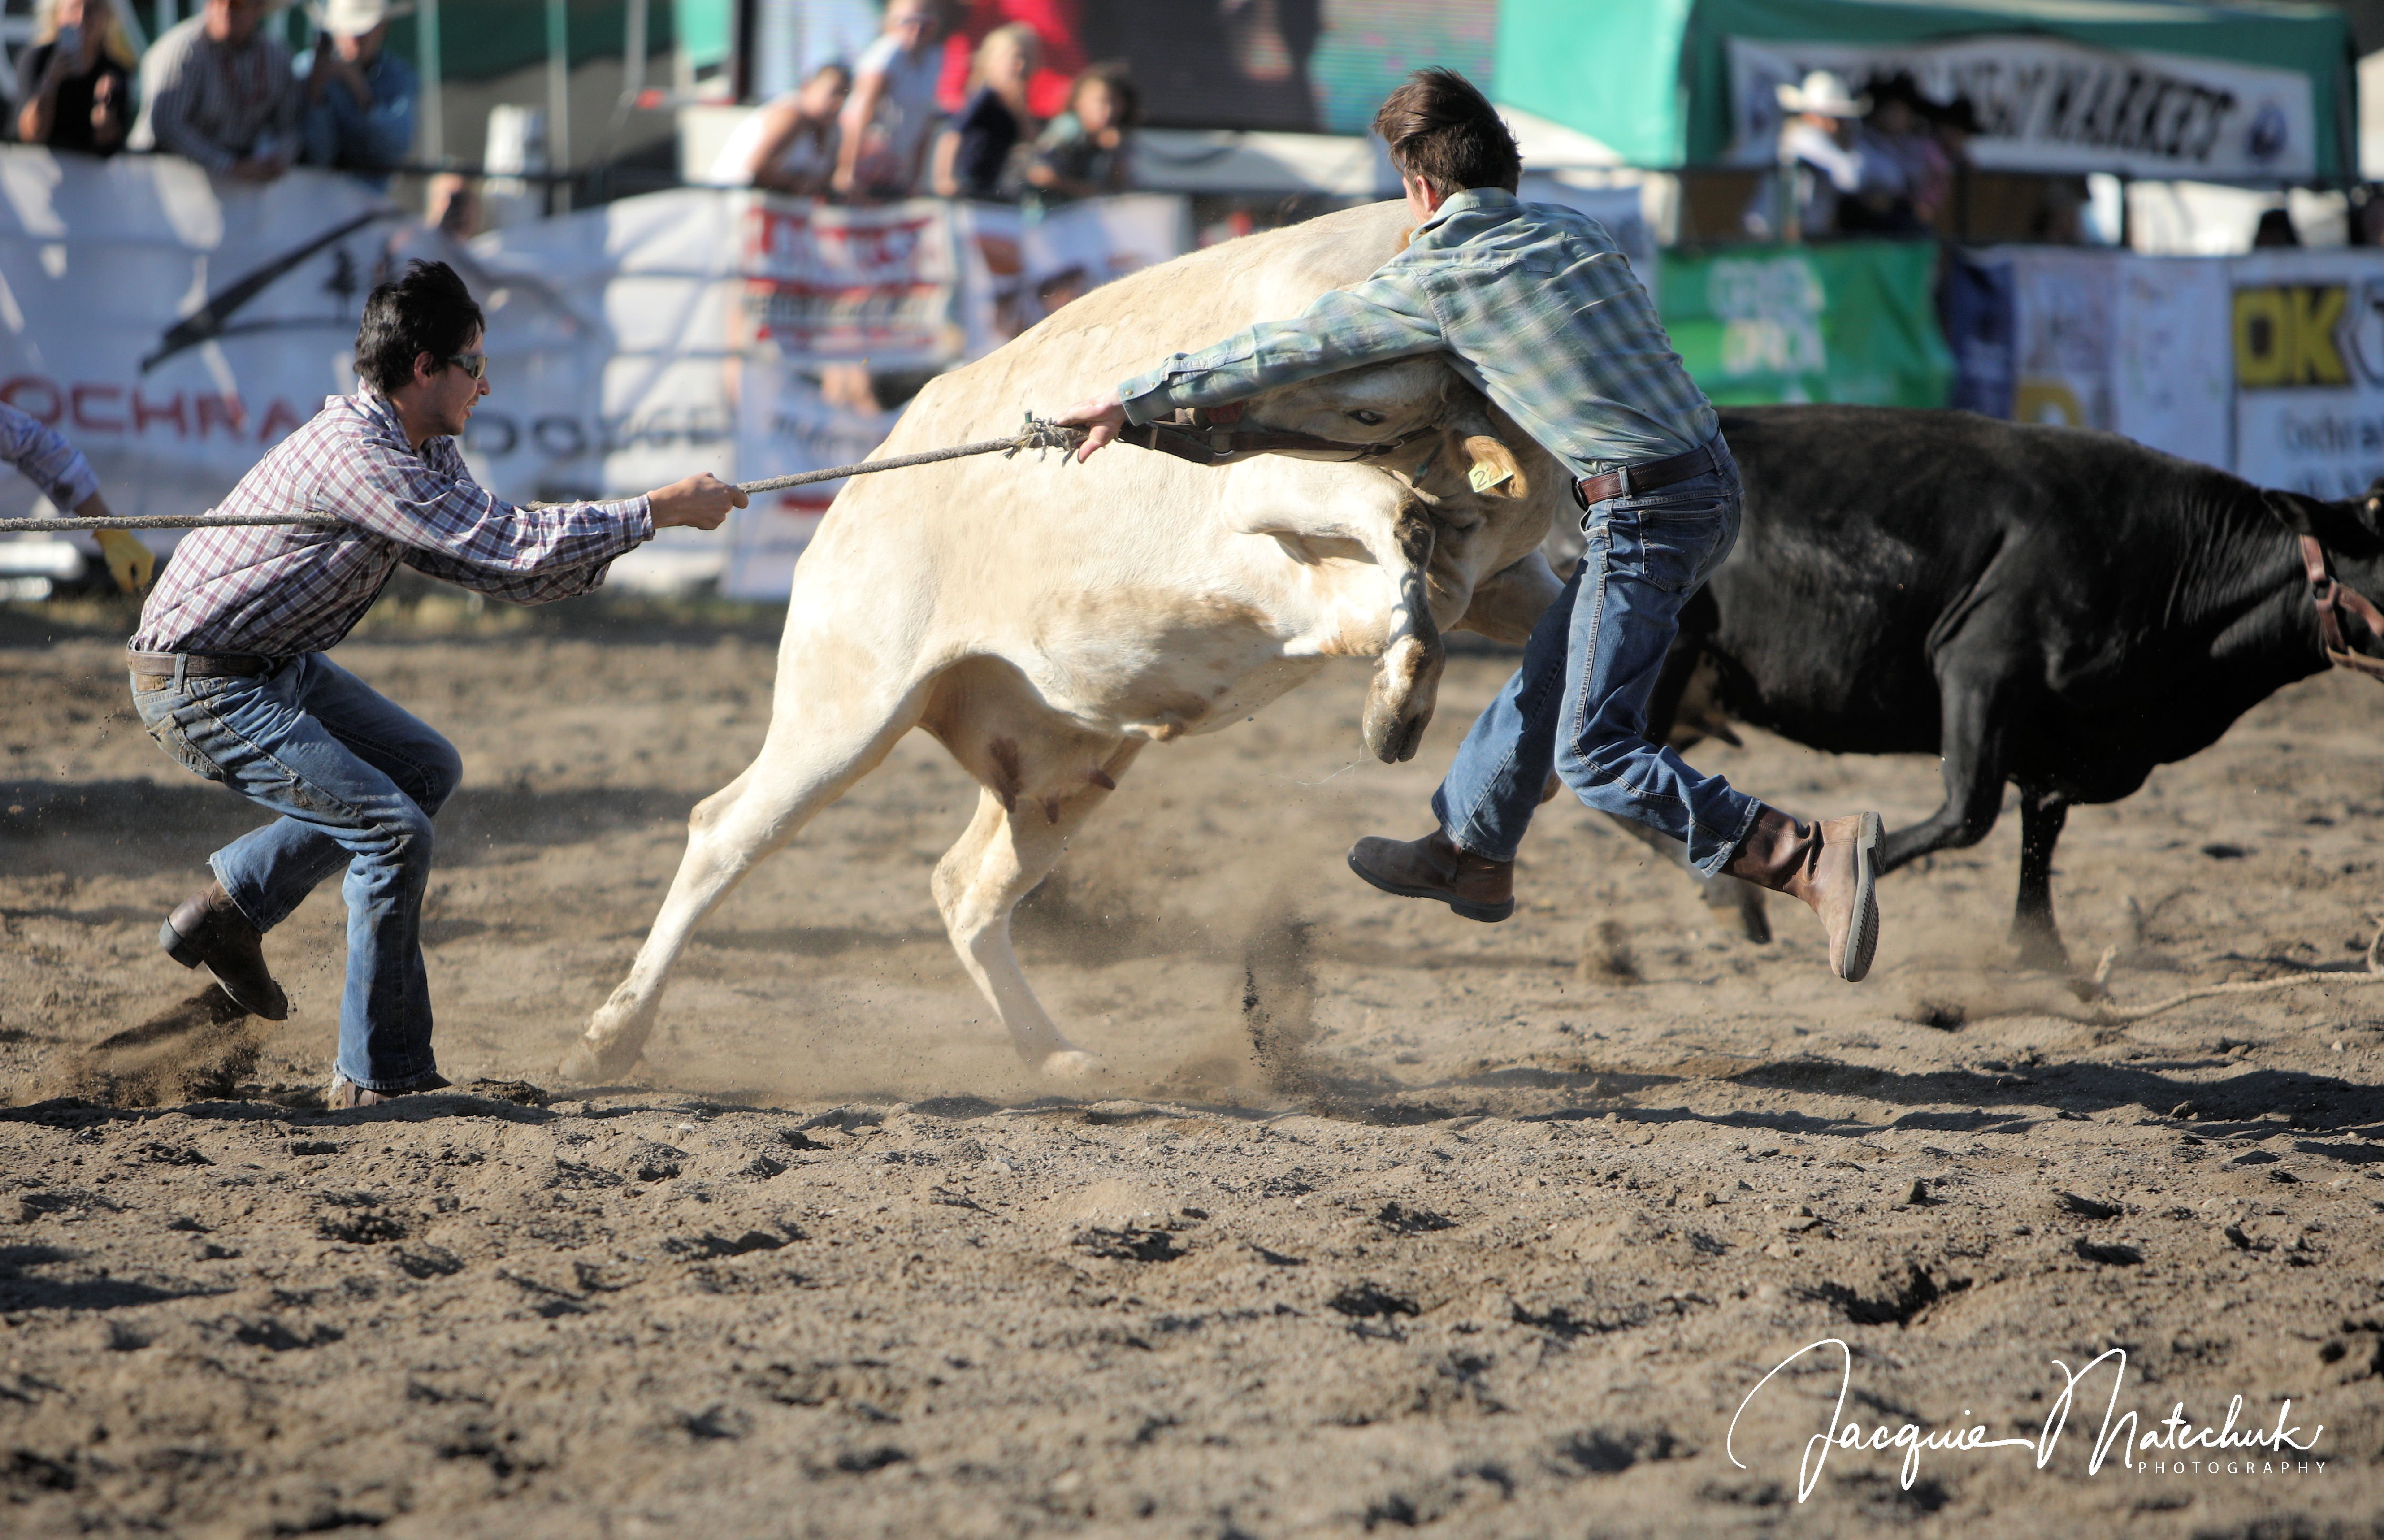 Wild Cow Races